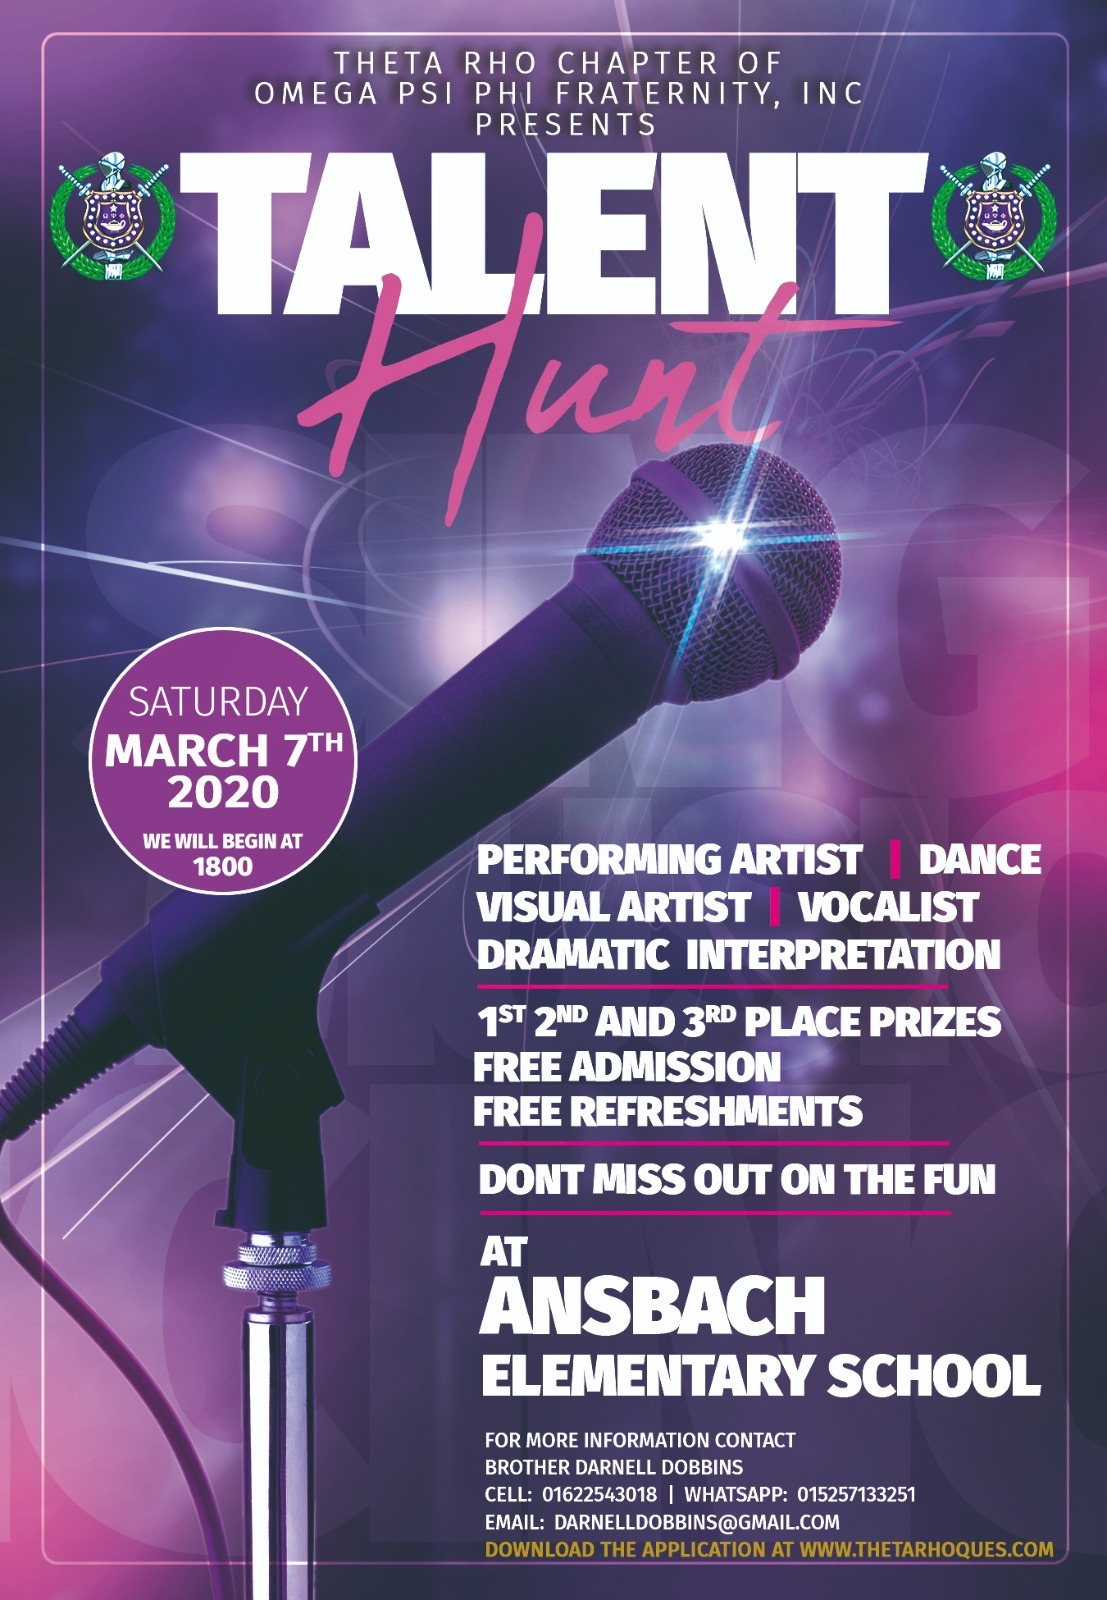 Theta Rho Chapter of Omega Psi Phi Fraternity, Inc. - Talent Hunt 2020